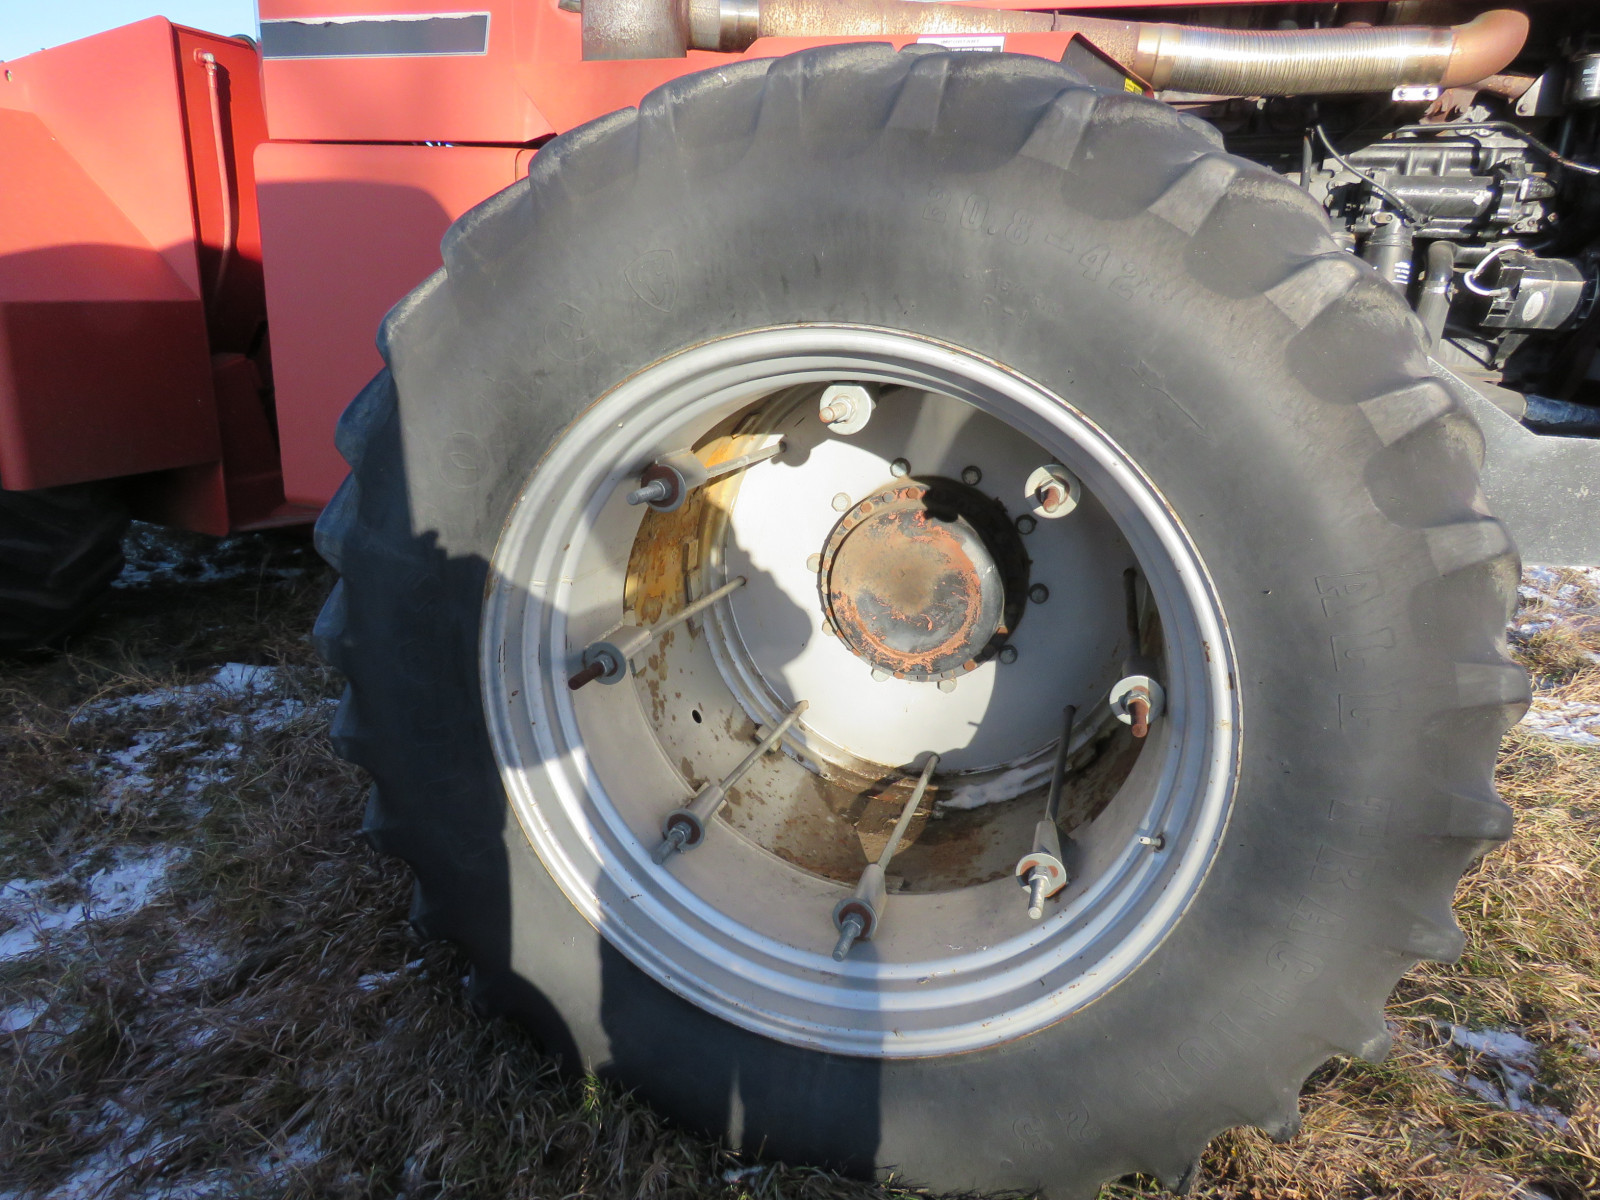 Case-IH 9170 4WD Tractor 9170 JCB0002613 - Image 8